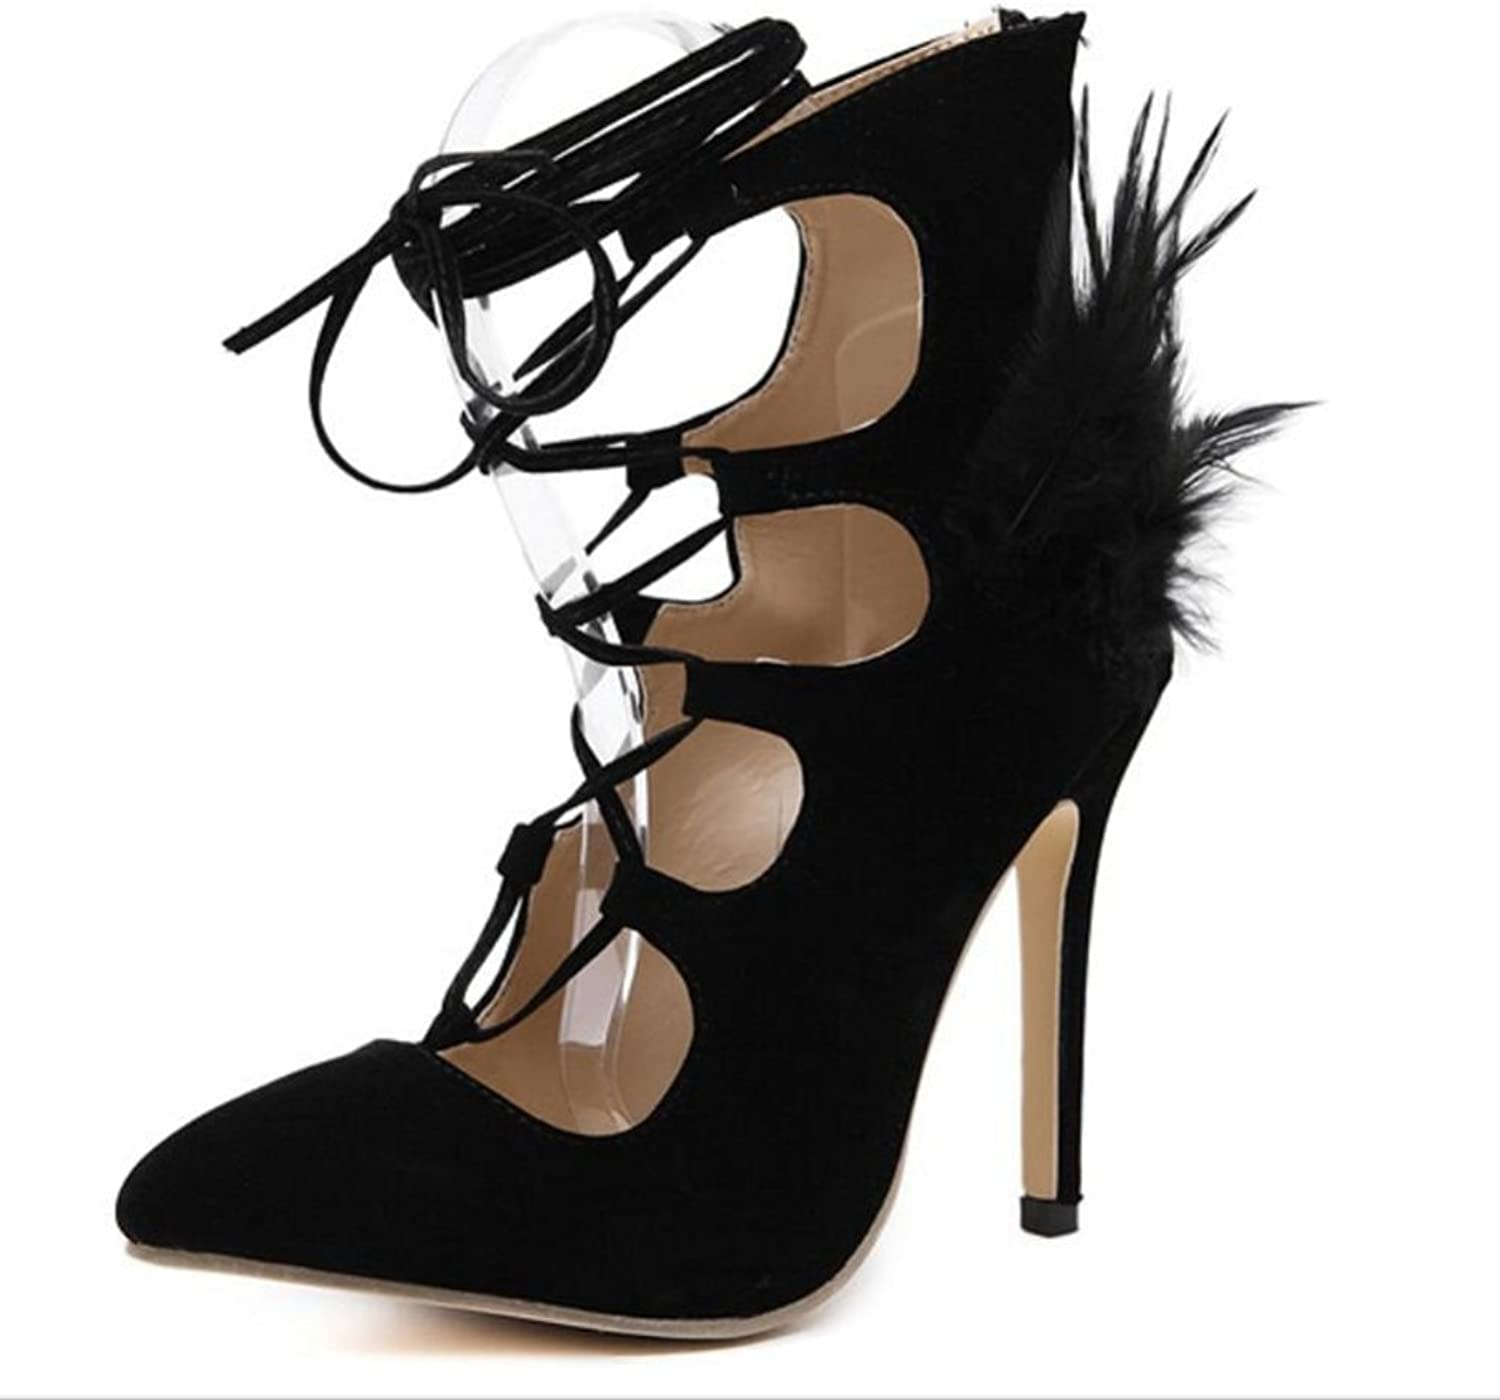 LINYI Stiletto Heels Temperament Suede Sandals Pointed Toe Ankle Strap Female Summer Black shoes